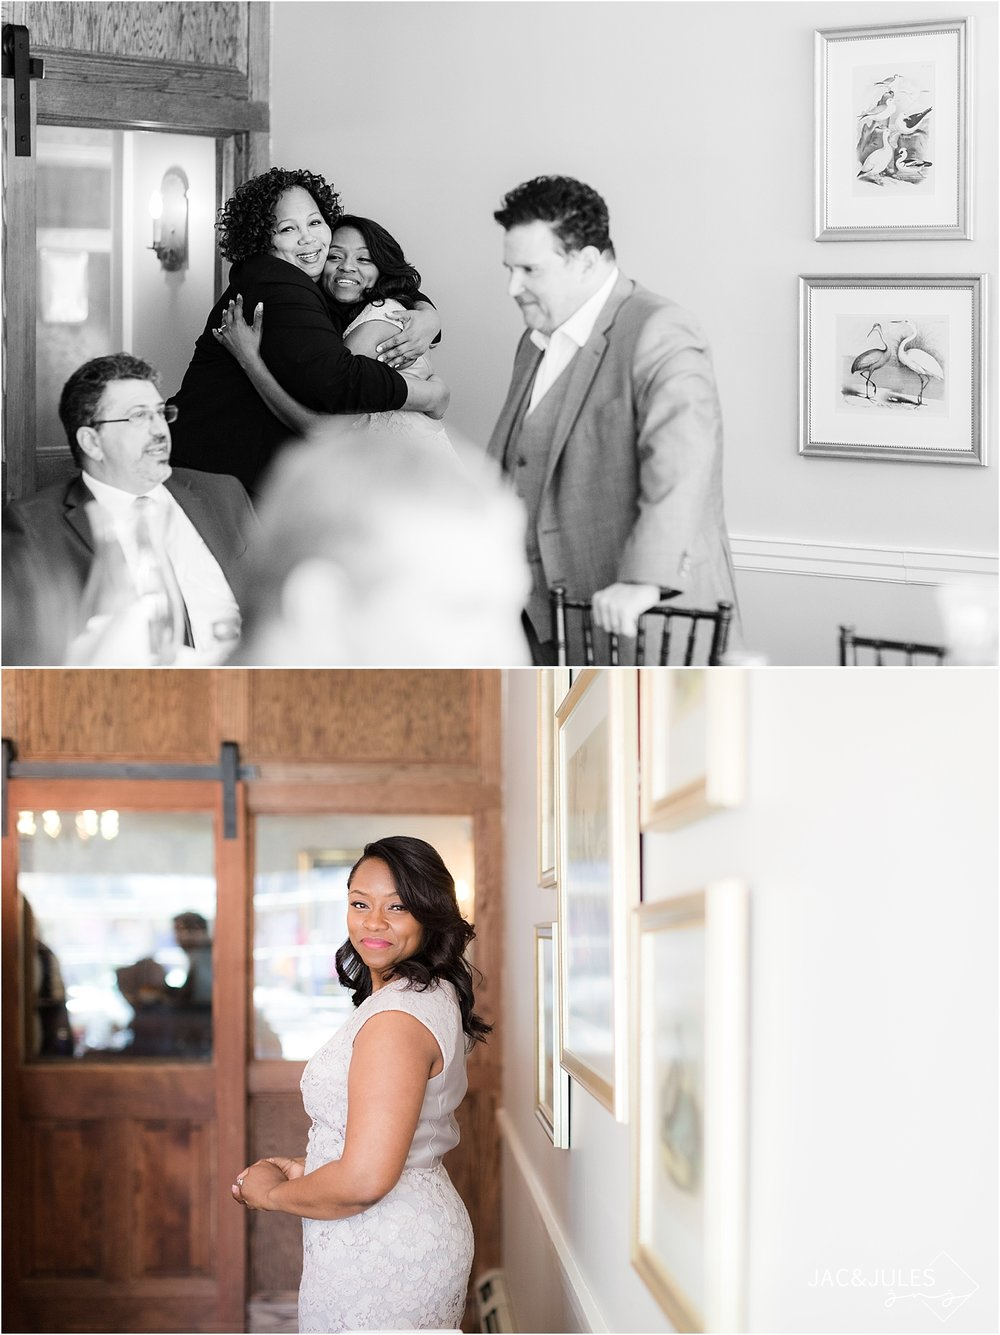 candid wedding picture at smithville inn in nj